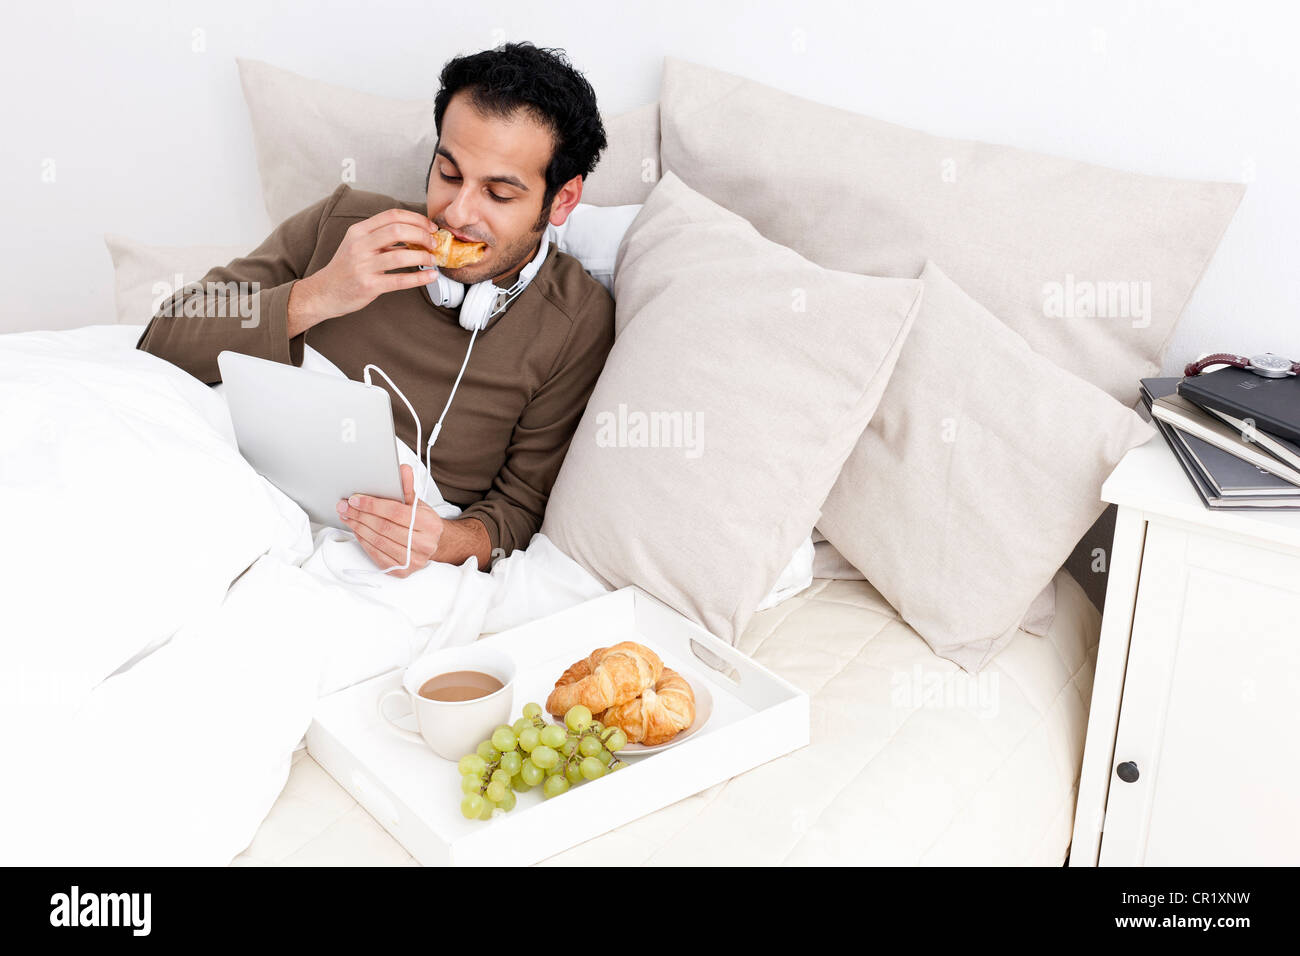 Man with tablet computer eating in bed - Stock Image